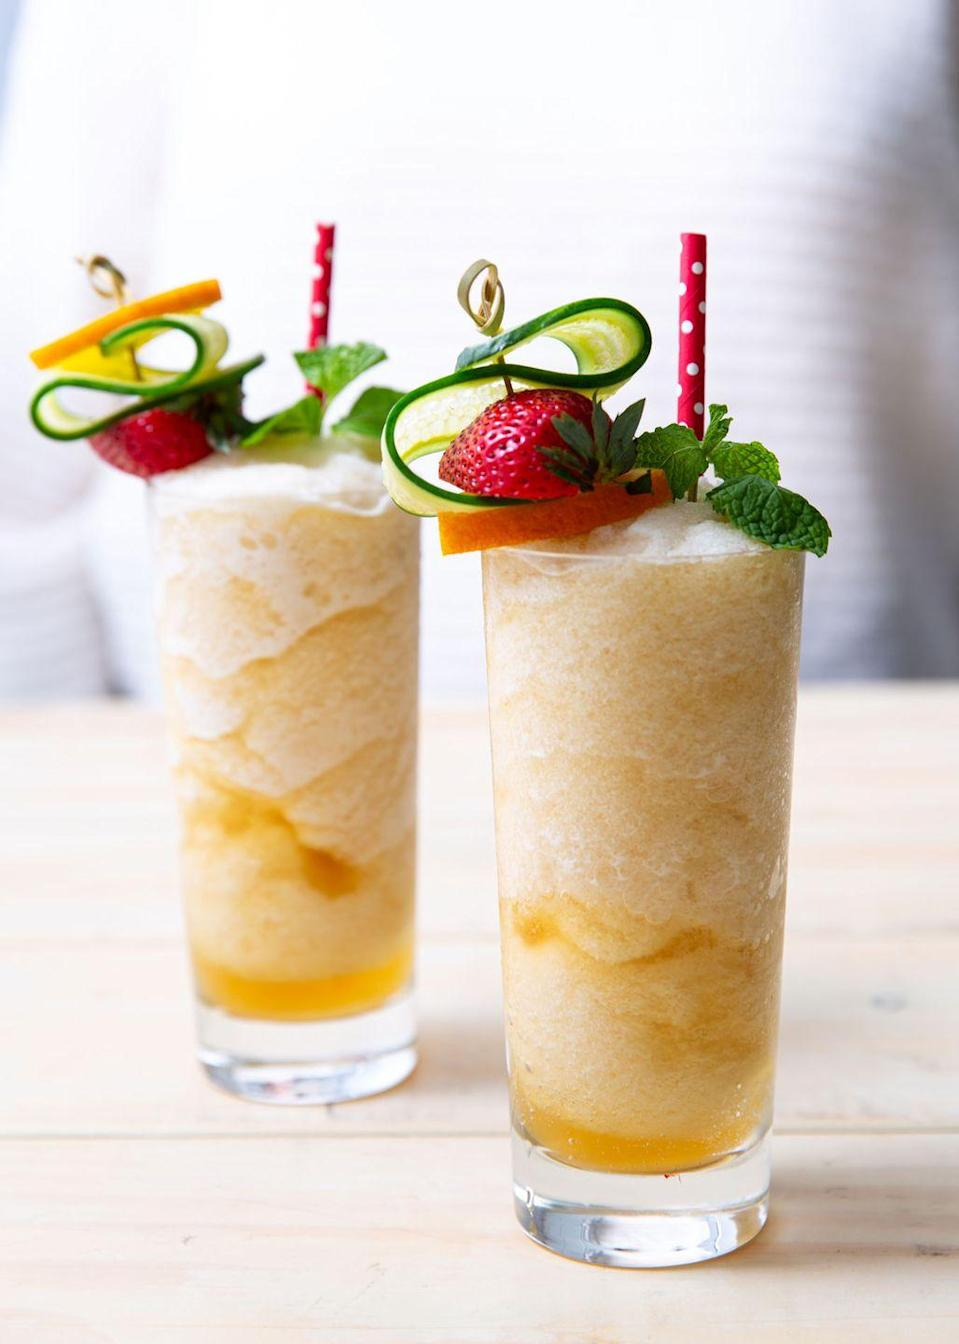 """<p>How pretty is that garnish?</p><p>Get the recipe from <a href=""""https://www.delish.com/cooking/recipe-ideas/a32784166/frozen-pimms-cup-recipe/"""" rel=""""nofollow noopener"""" target=""""_blank"""" data-ylk=""""slk:Delish"""" class=""""link rapid-noclick-resp"""">Delish</a>.</p>"""